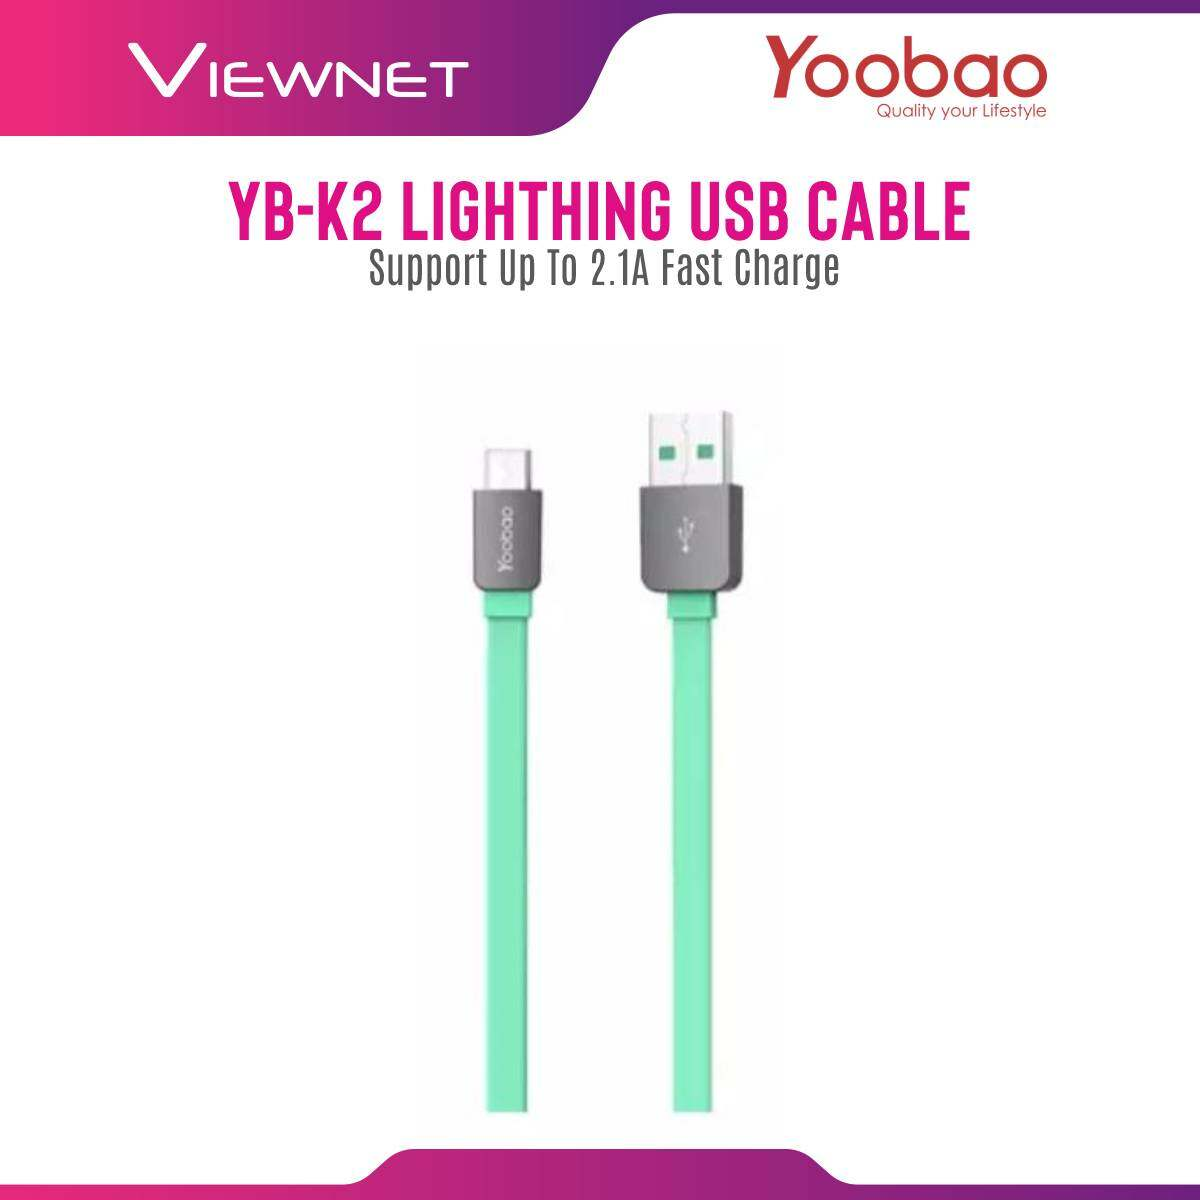 Yoobao YB-K2 80cm Lighthing USB Cable with Fast Charge 2.1A Support for iPhone User